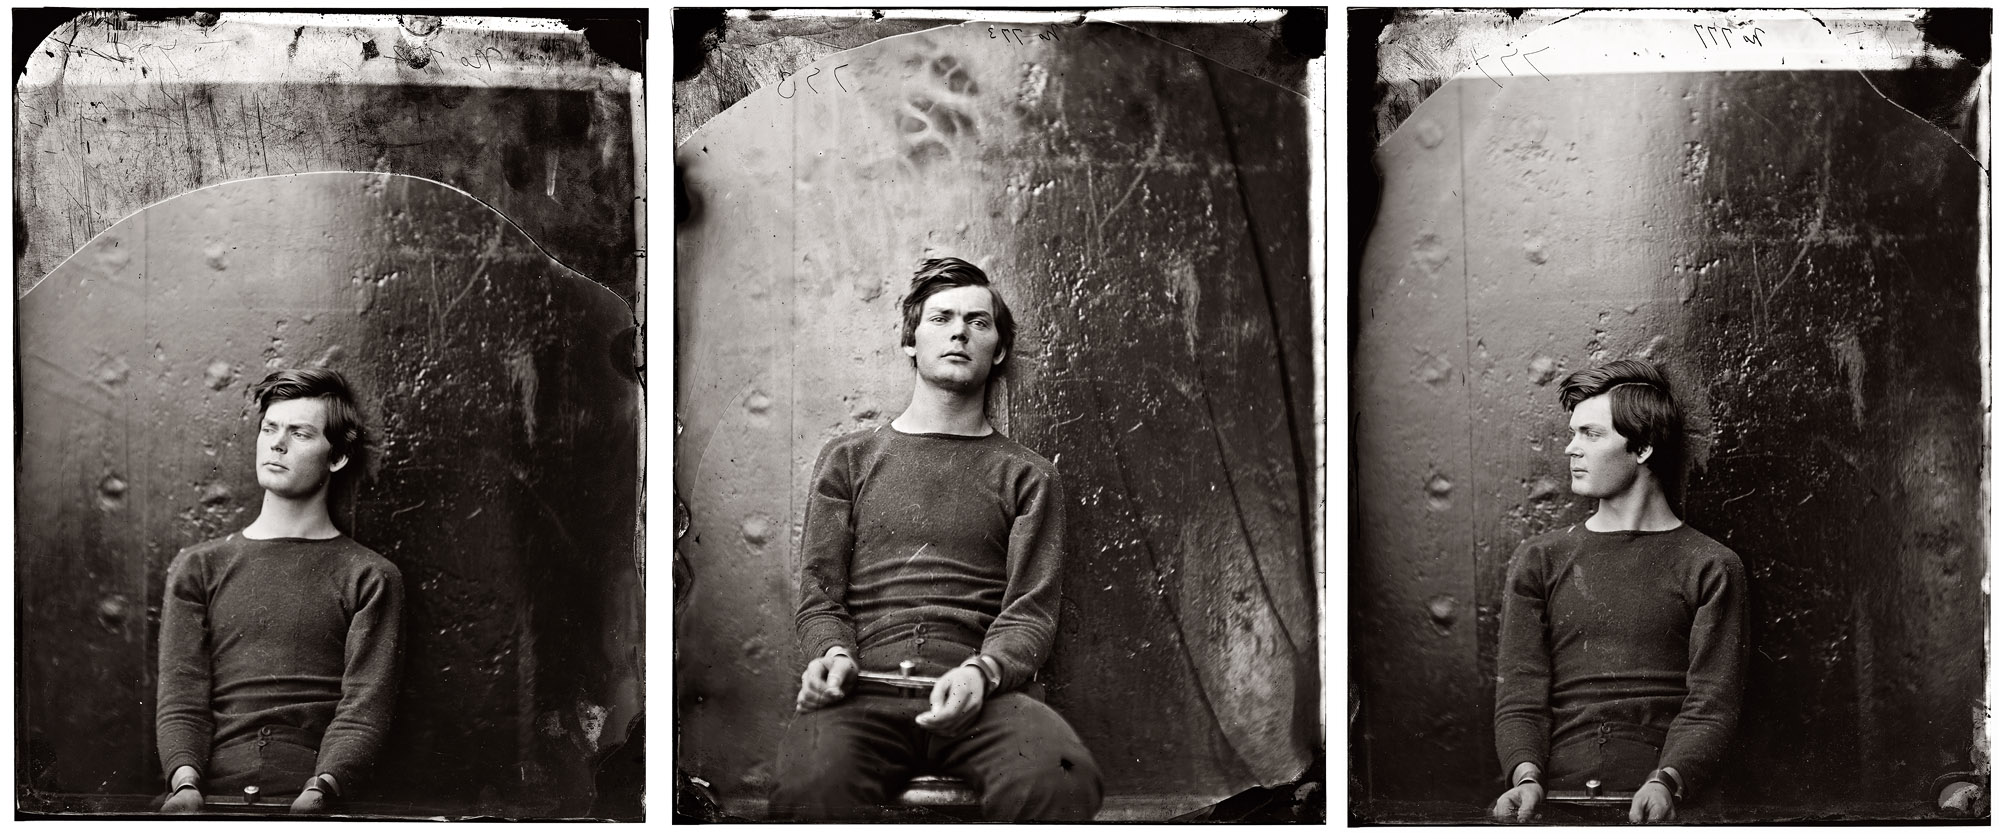 Three views of Lewis Payne (a.k.a. Lewis Powell) in April 1865, three months before his execution by hanging, wearing the same sweater.